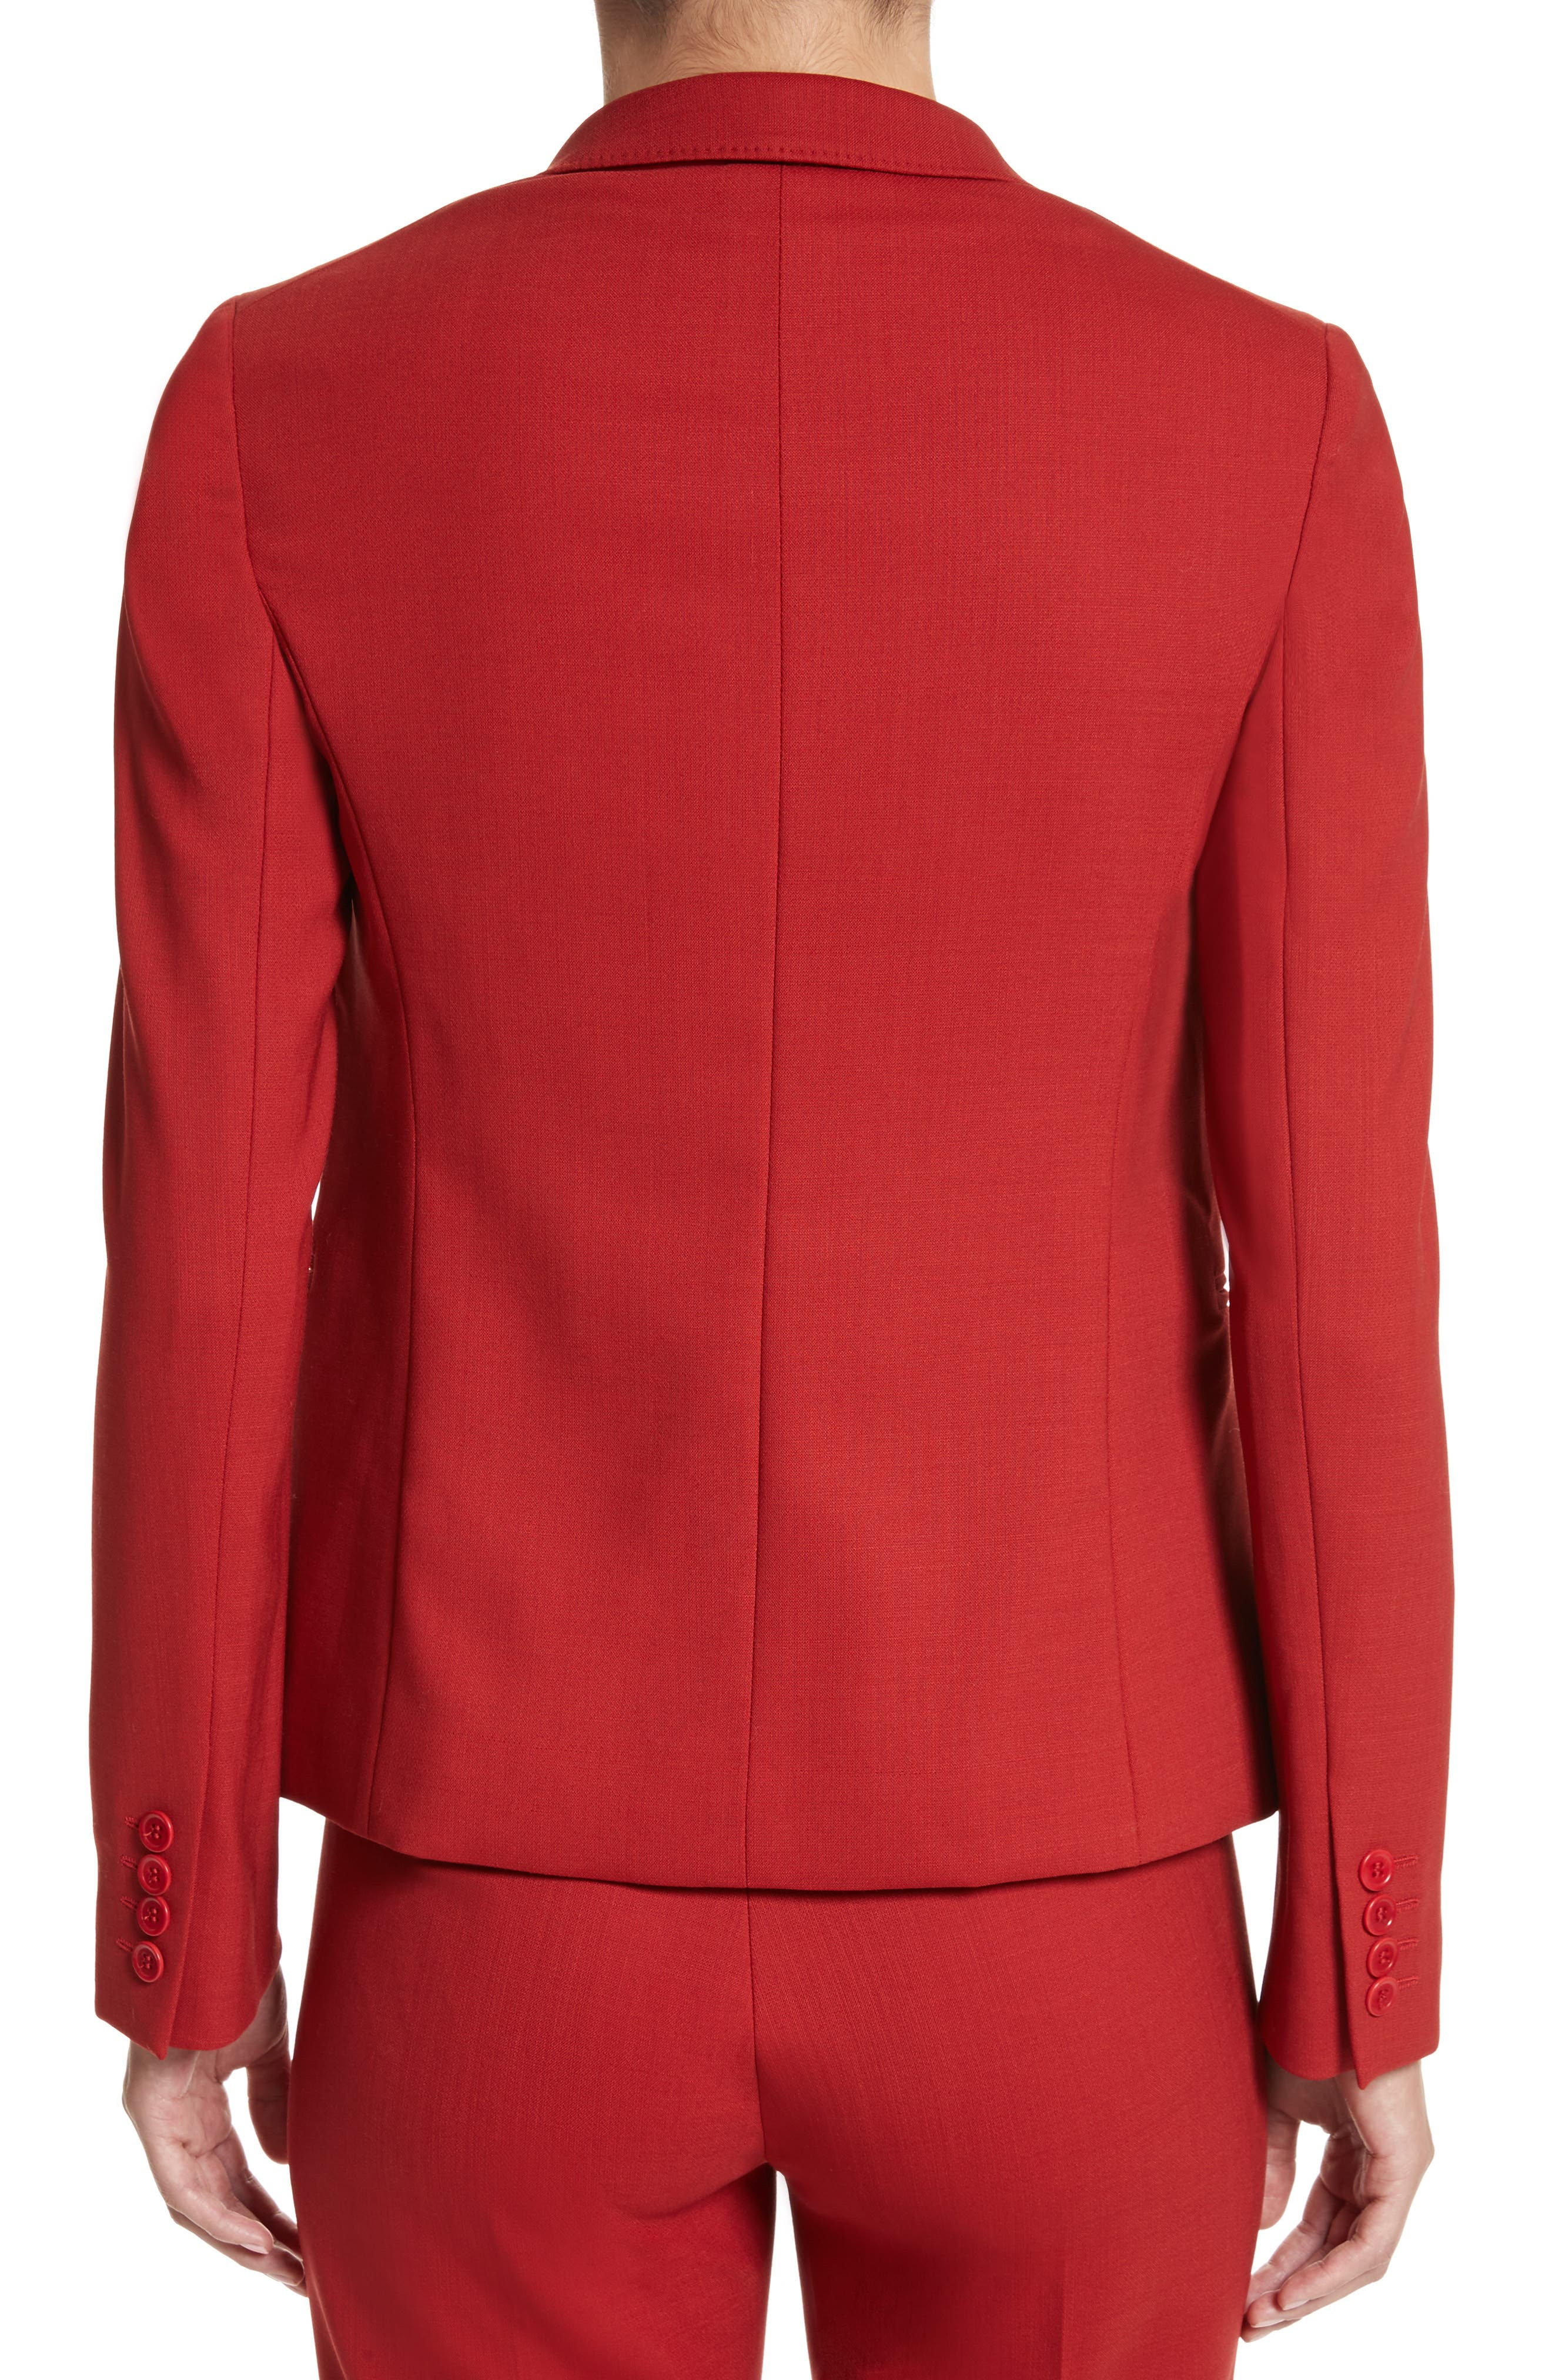 Umile Stretch Wool Jacket,                             Alternate thumbnail 2, color,                             614